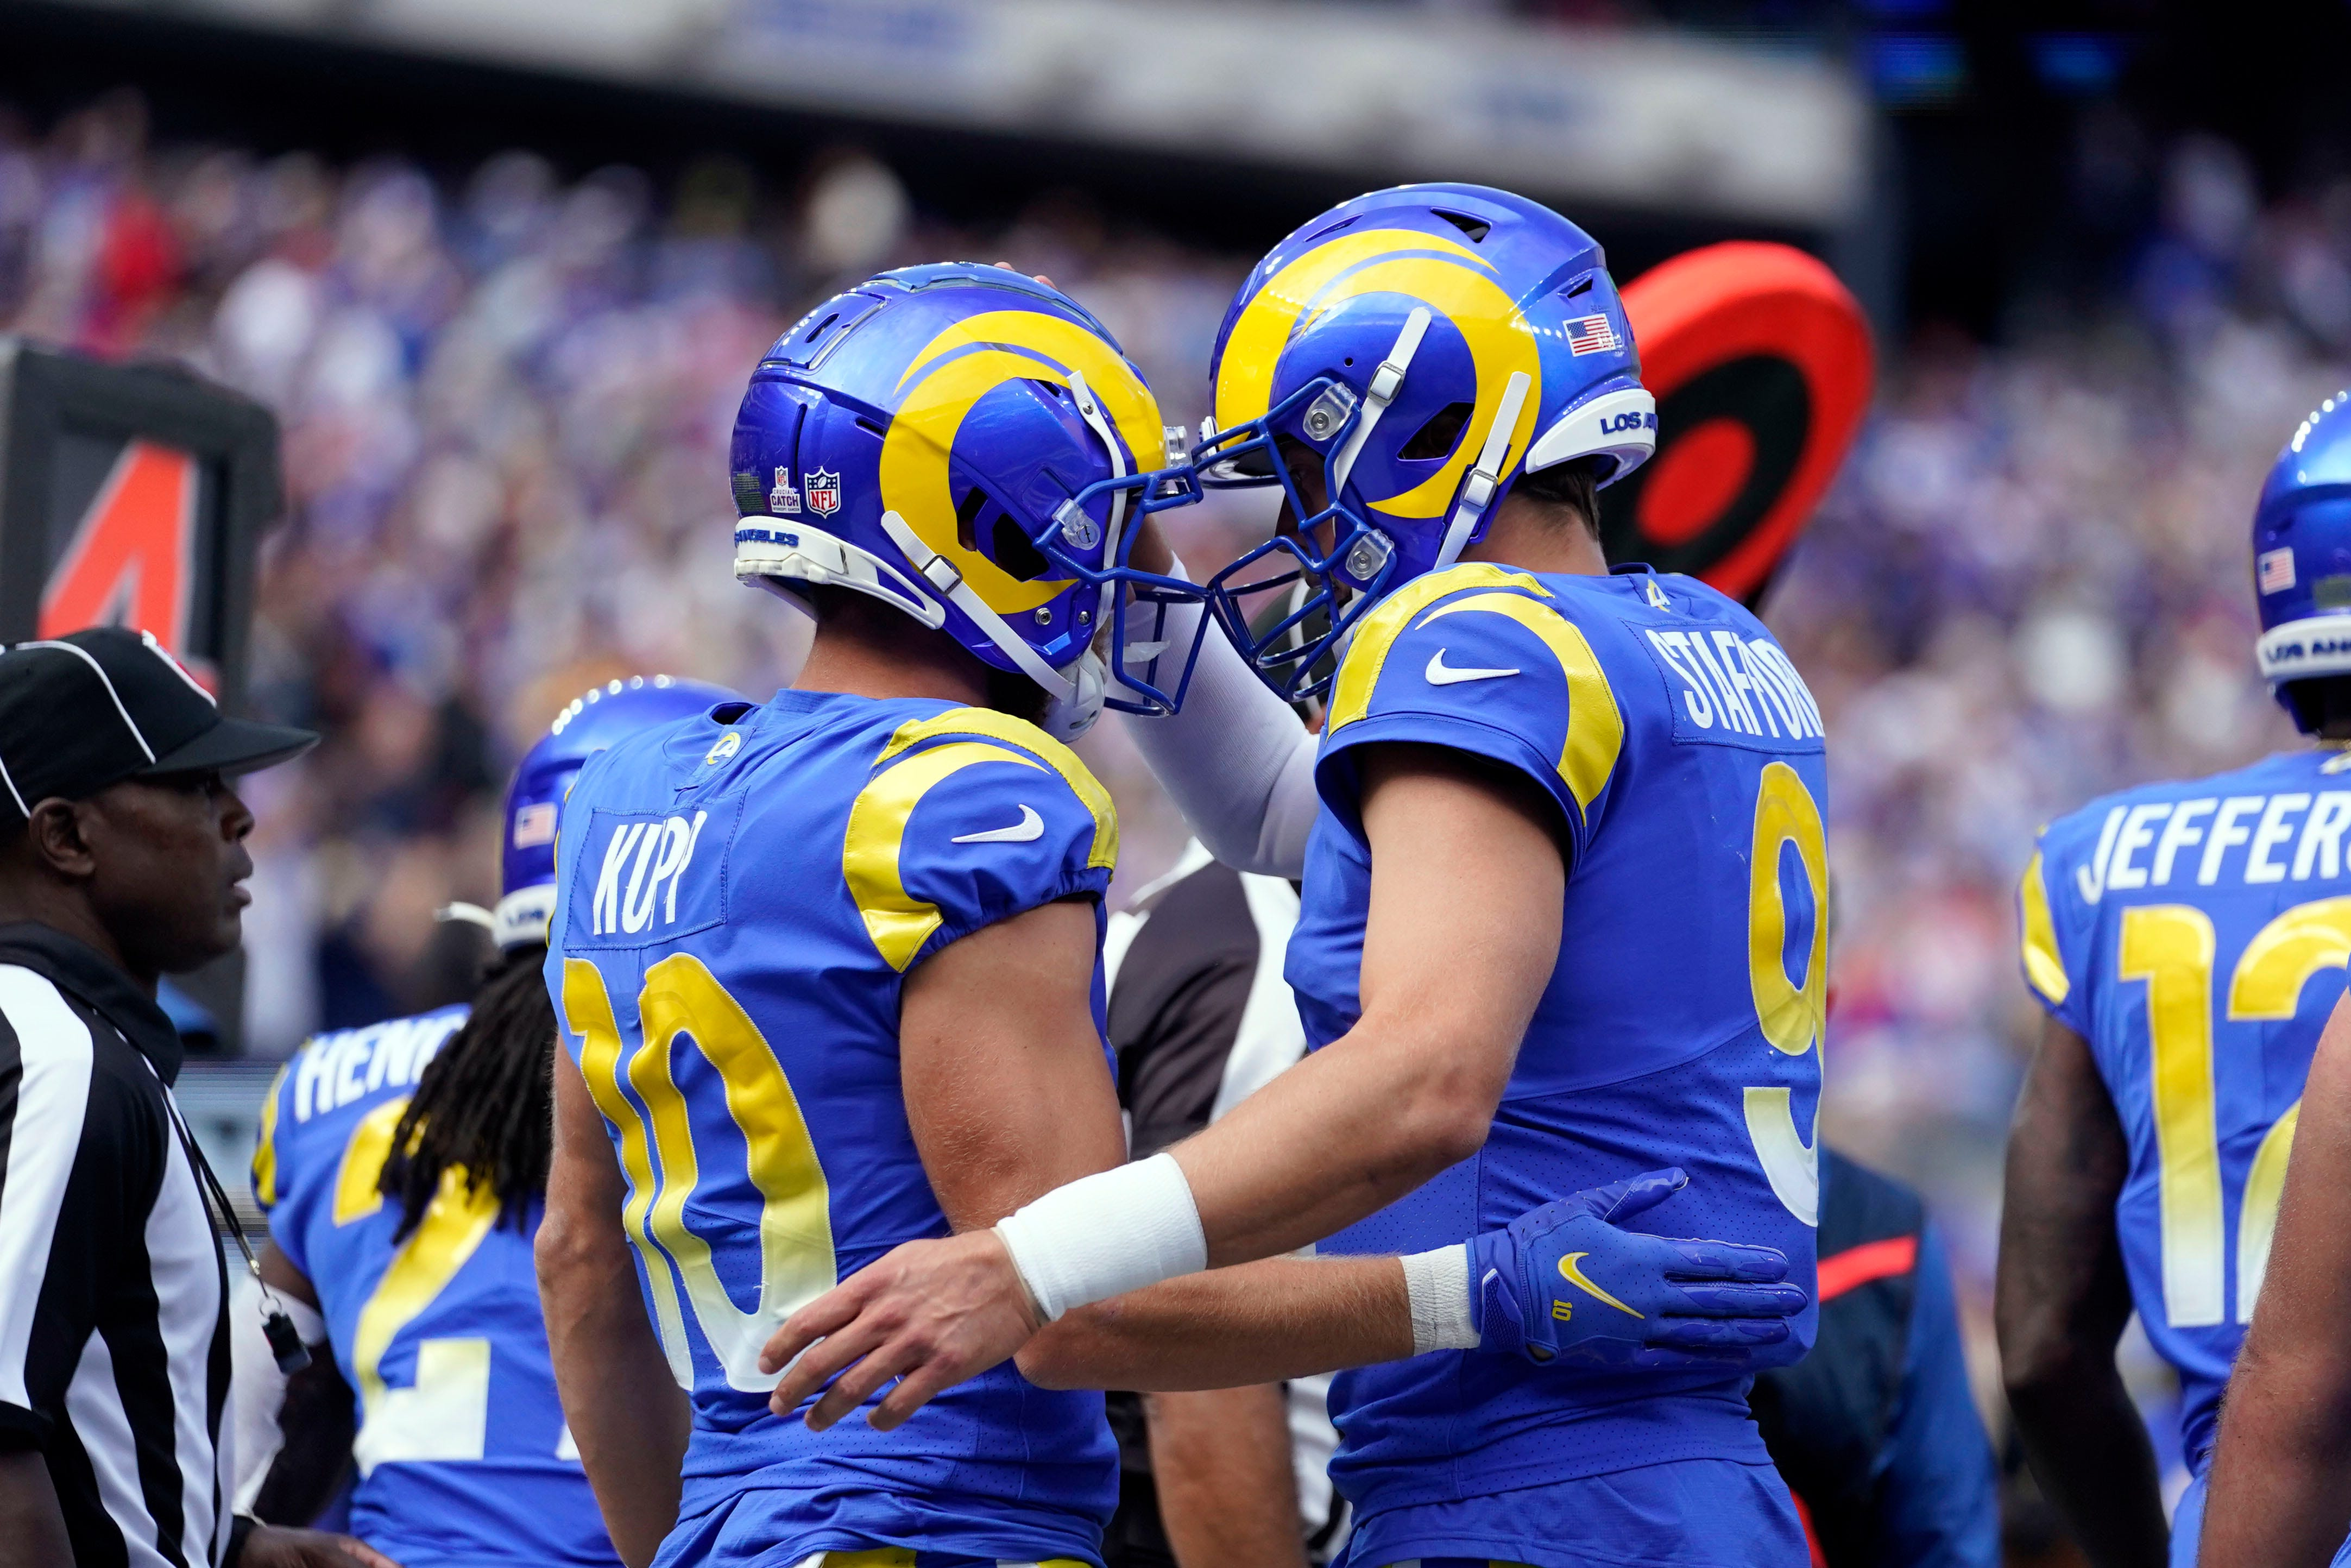 Los Angeles Rams wide receiver Cooper Kupp (10) and quarterback Matthew Stafford (9) celebrate their touchdown. The Giants fall to the Rams, 38-11, at MetLife Stadium on Sunday, Oct. 17, 2021, in East Rutherford.